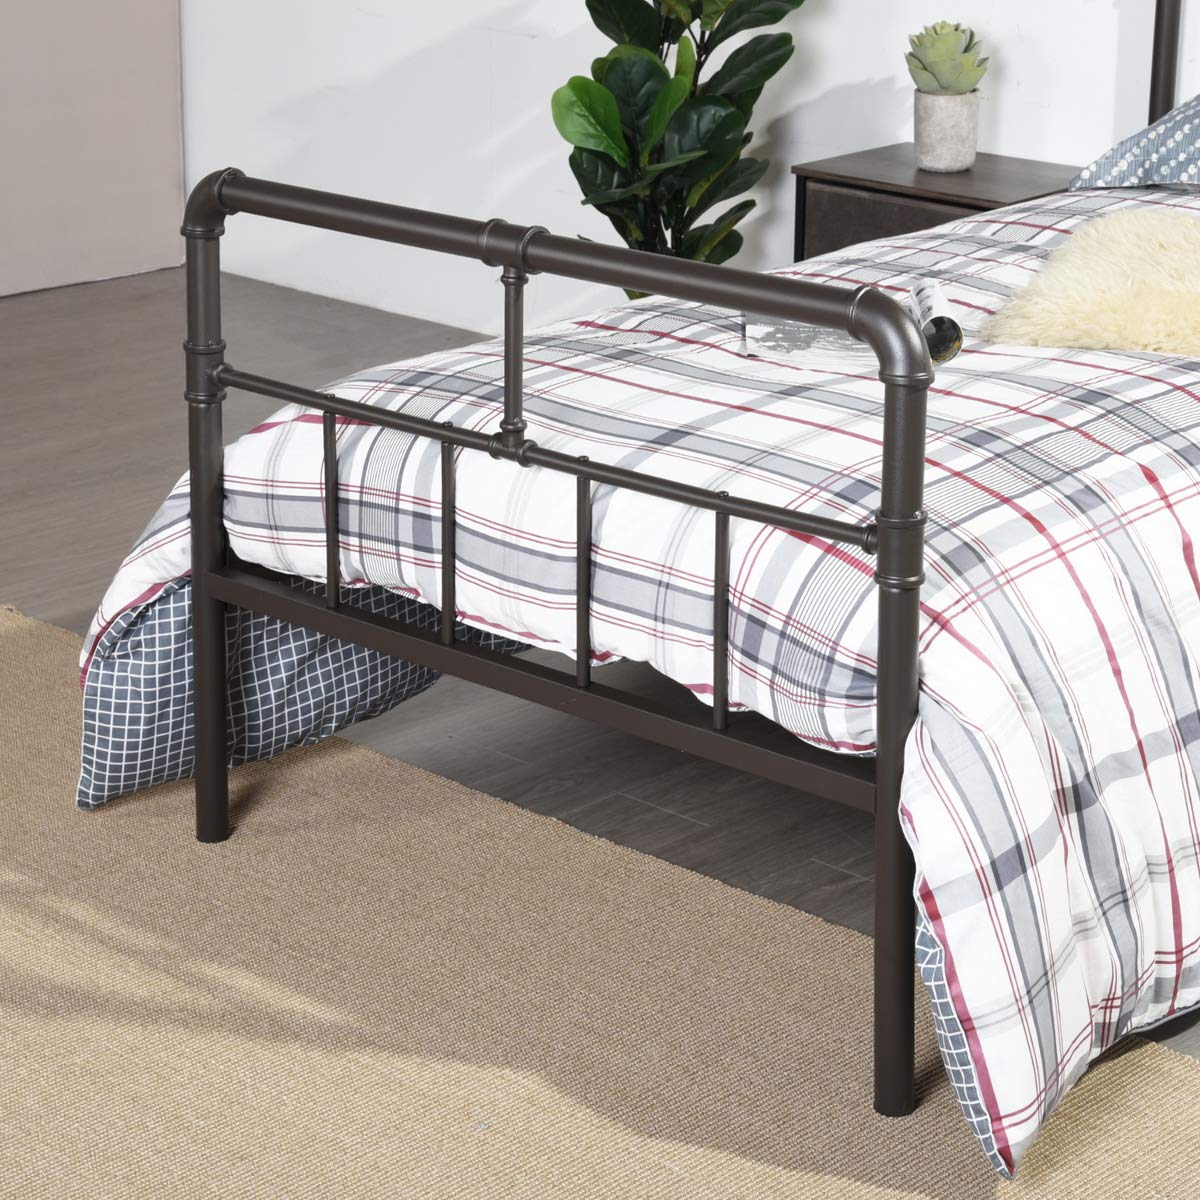 GreenForest 14inch Single Metal Platform Bed with Wood Slats Support Reinforced Bed Frame with High Headboard Mattress Foundation No Need Box Spring Twin Size Matte Dark Coffee